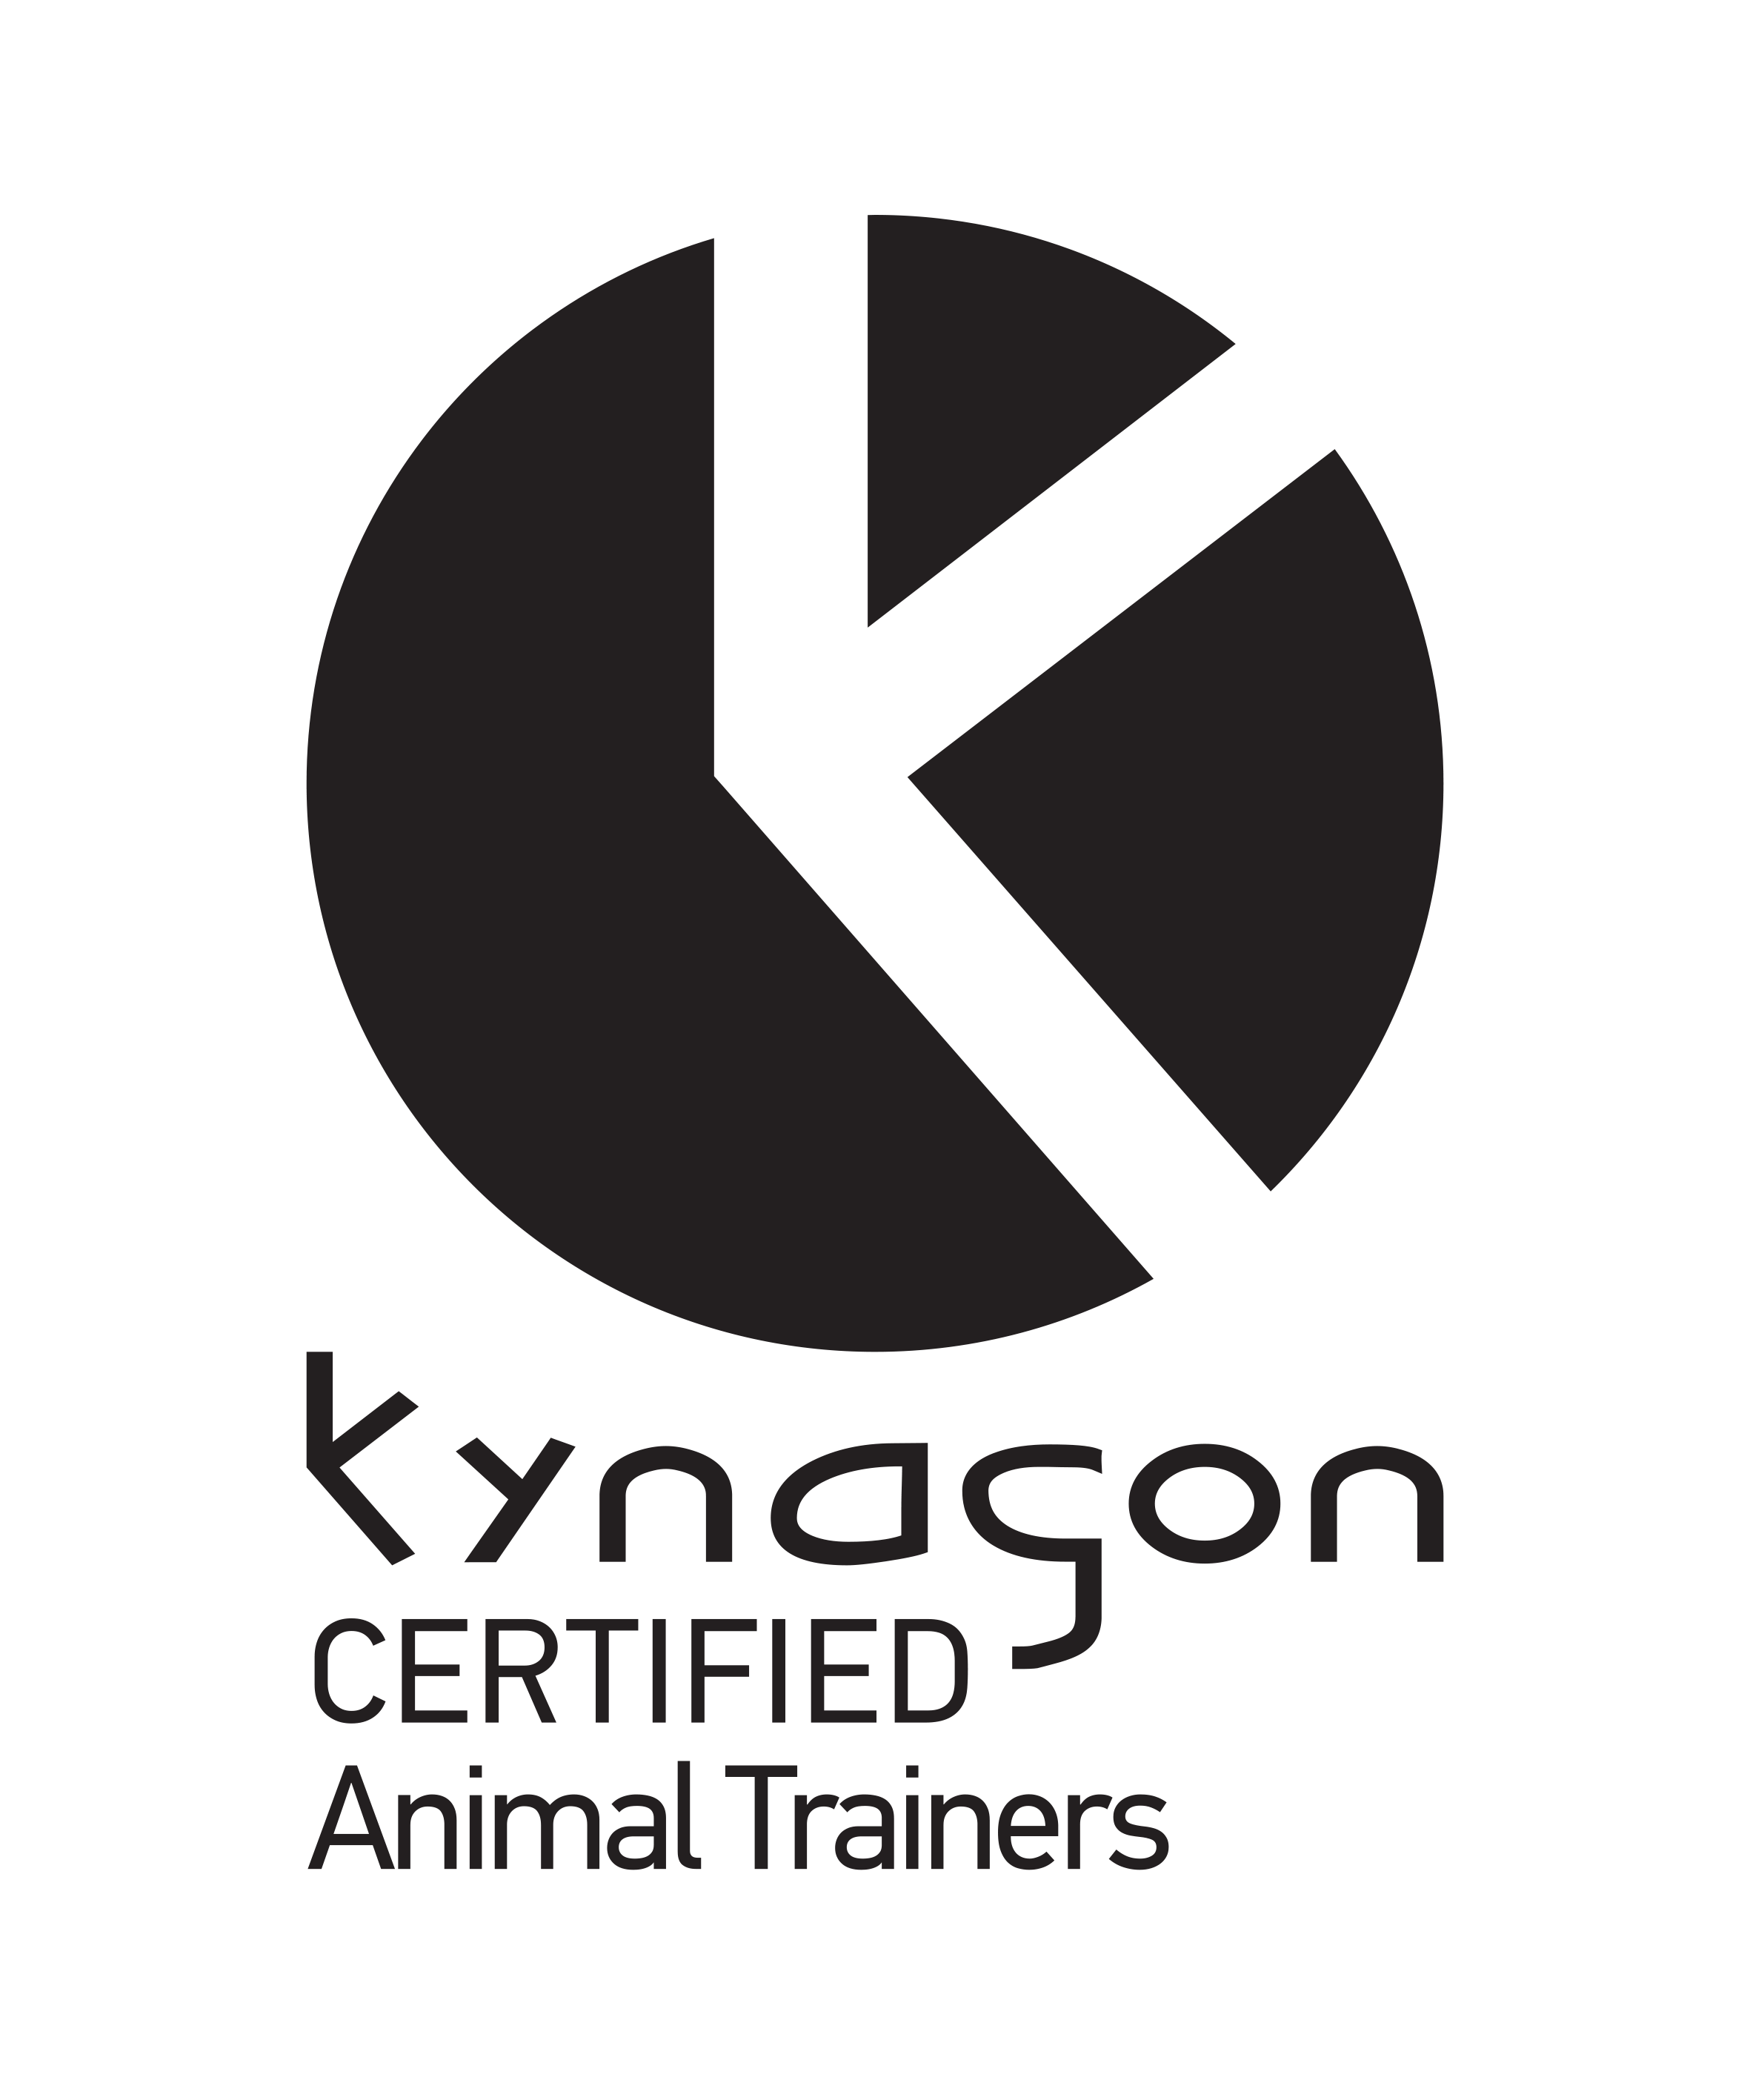 kynagon animaltrainer black